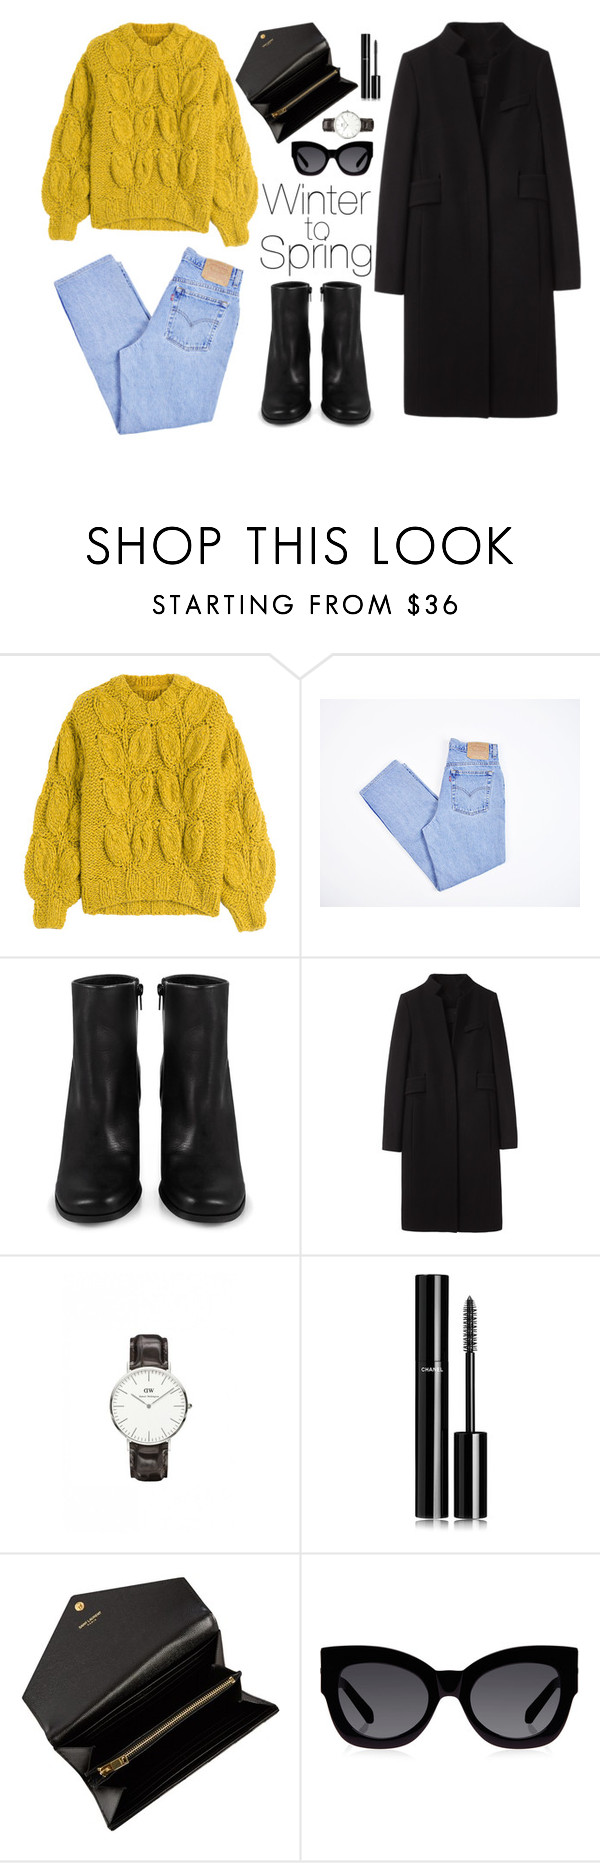 """""""Winter to Spring"""" by laurboor ❤ liked on Polyvore featuring Maison Margiela, Levi's, Miista, Alexander Wang, Daniel Wellington, Chanel, Yves Saint Laurent, Karen Walker, WhatToWear and transition"""